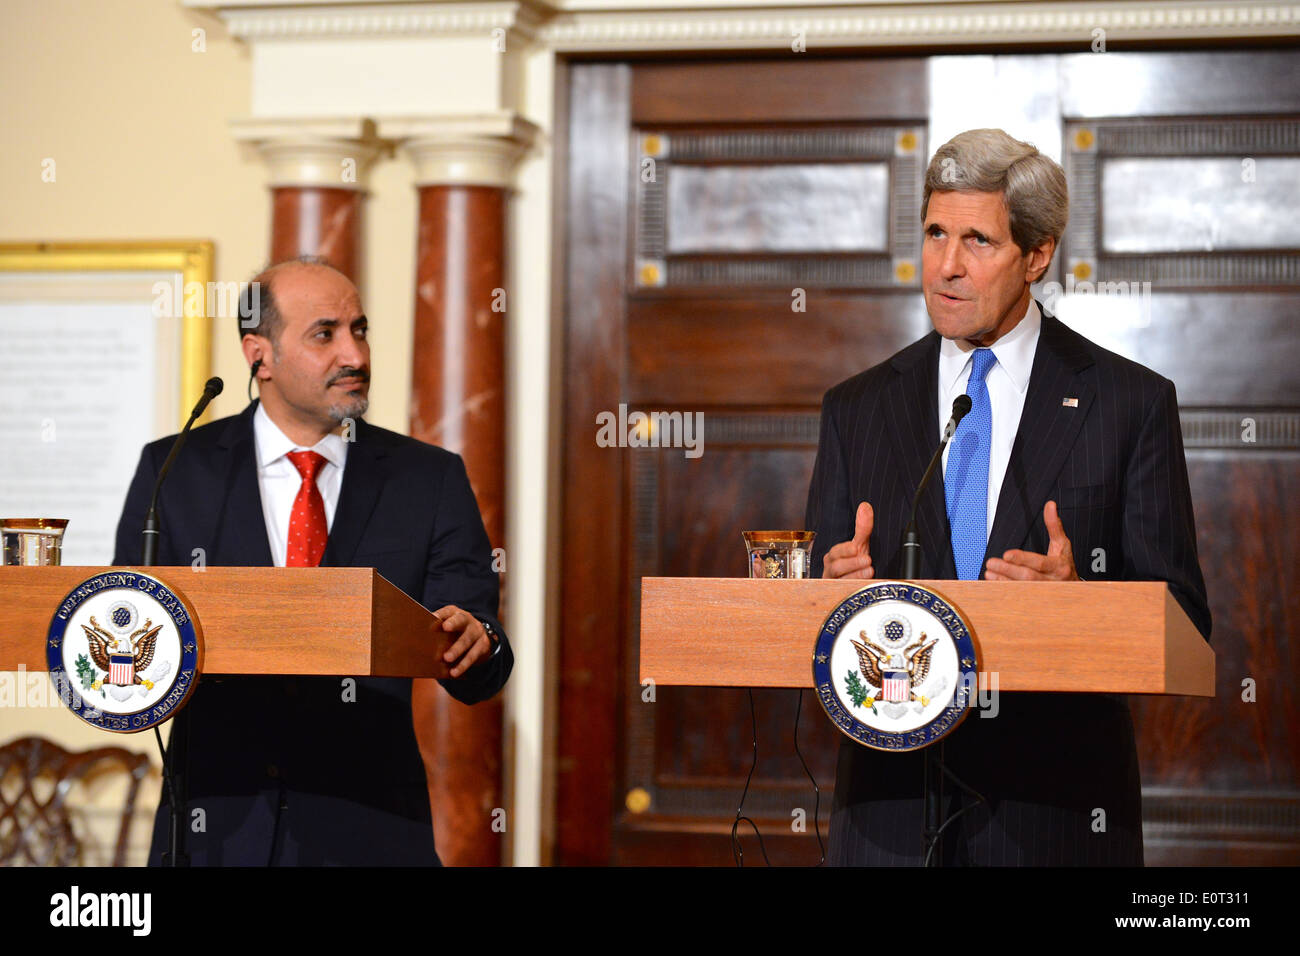 Secretary Kerry and Syrian Opposition Coalition President al-Jarba Address Reporters - Stock Image